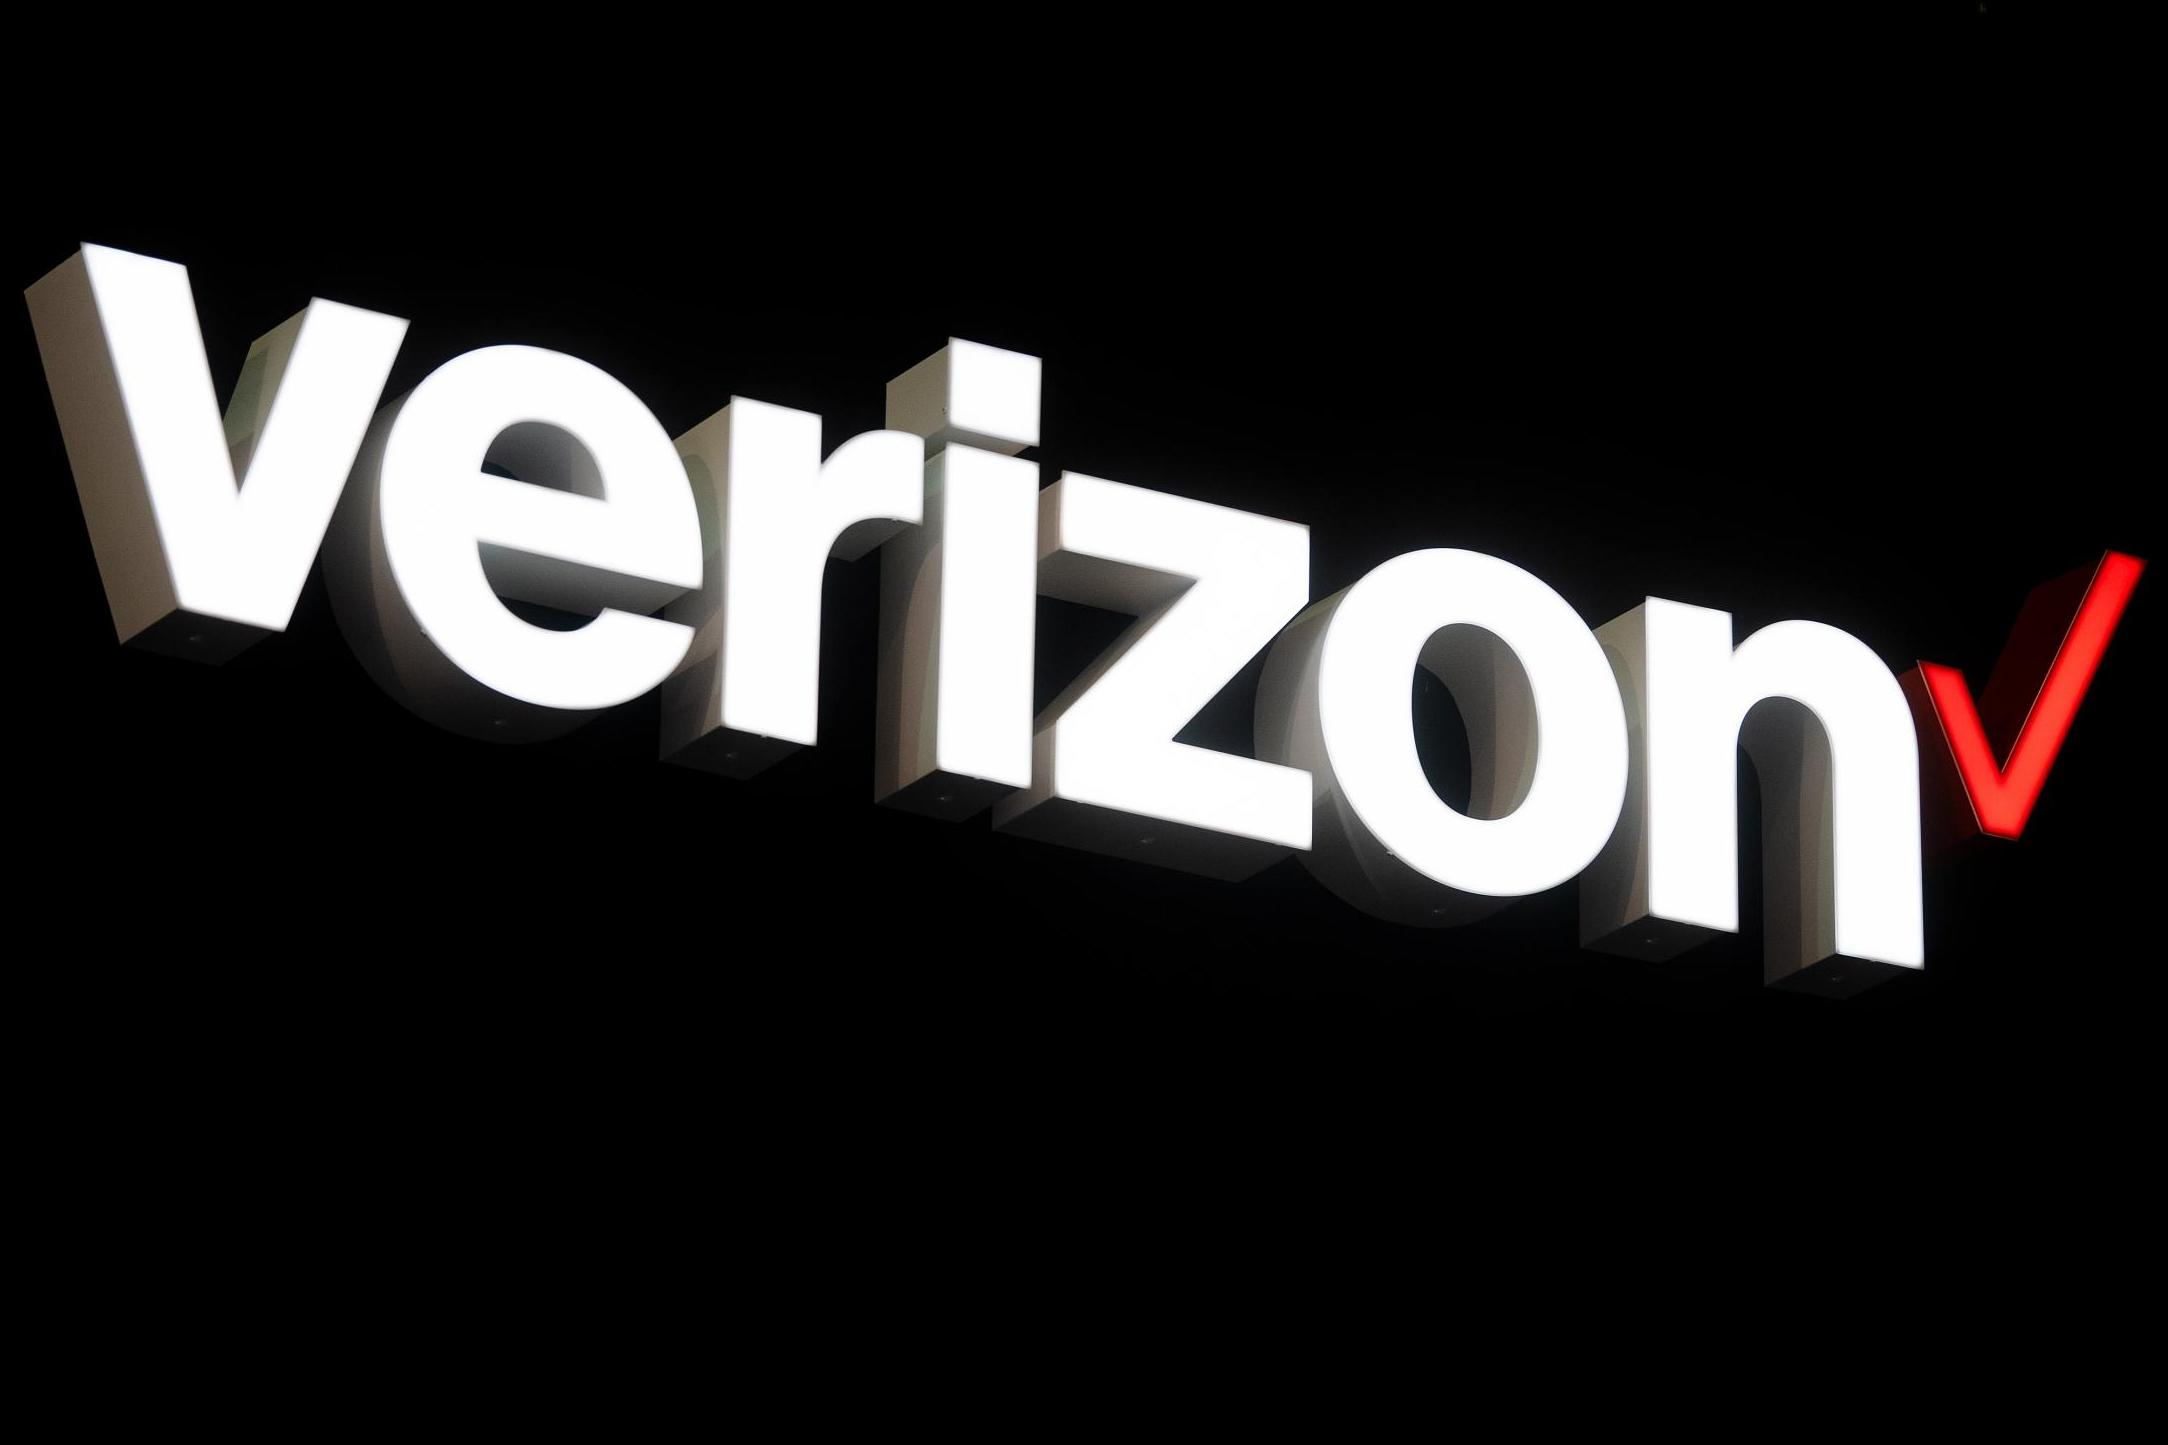 Verizon to give subscribers 15GB of free data during the coronavirus outbreak